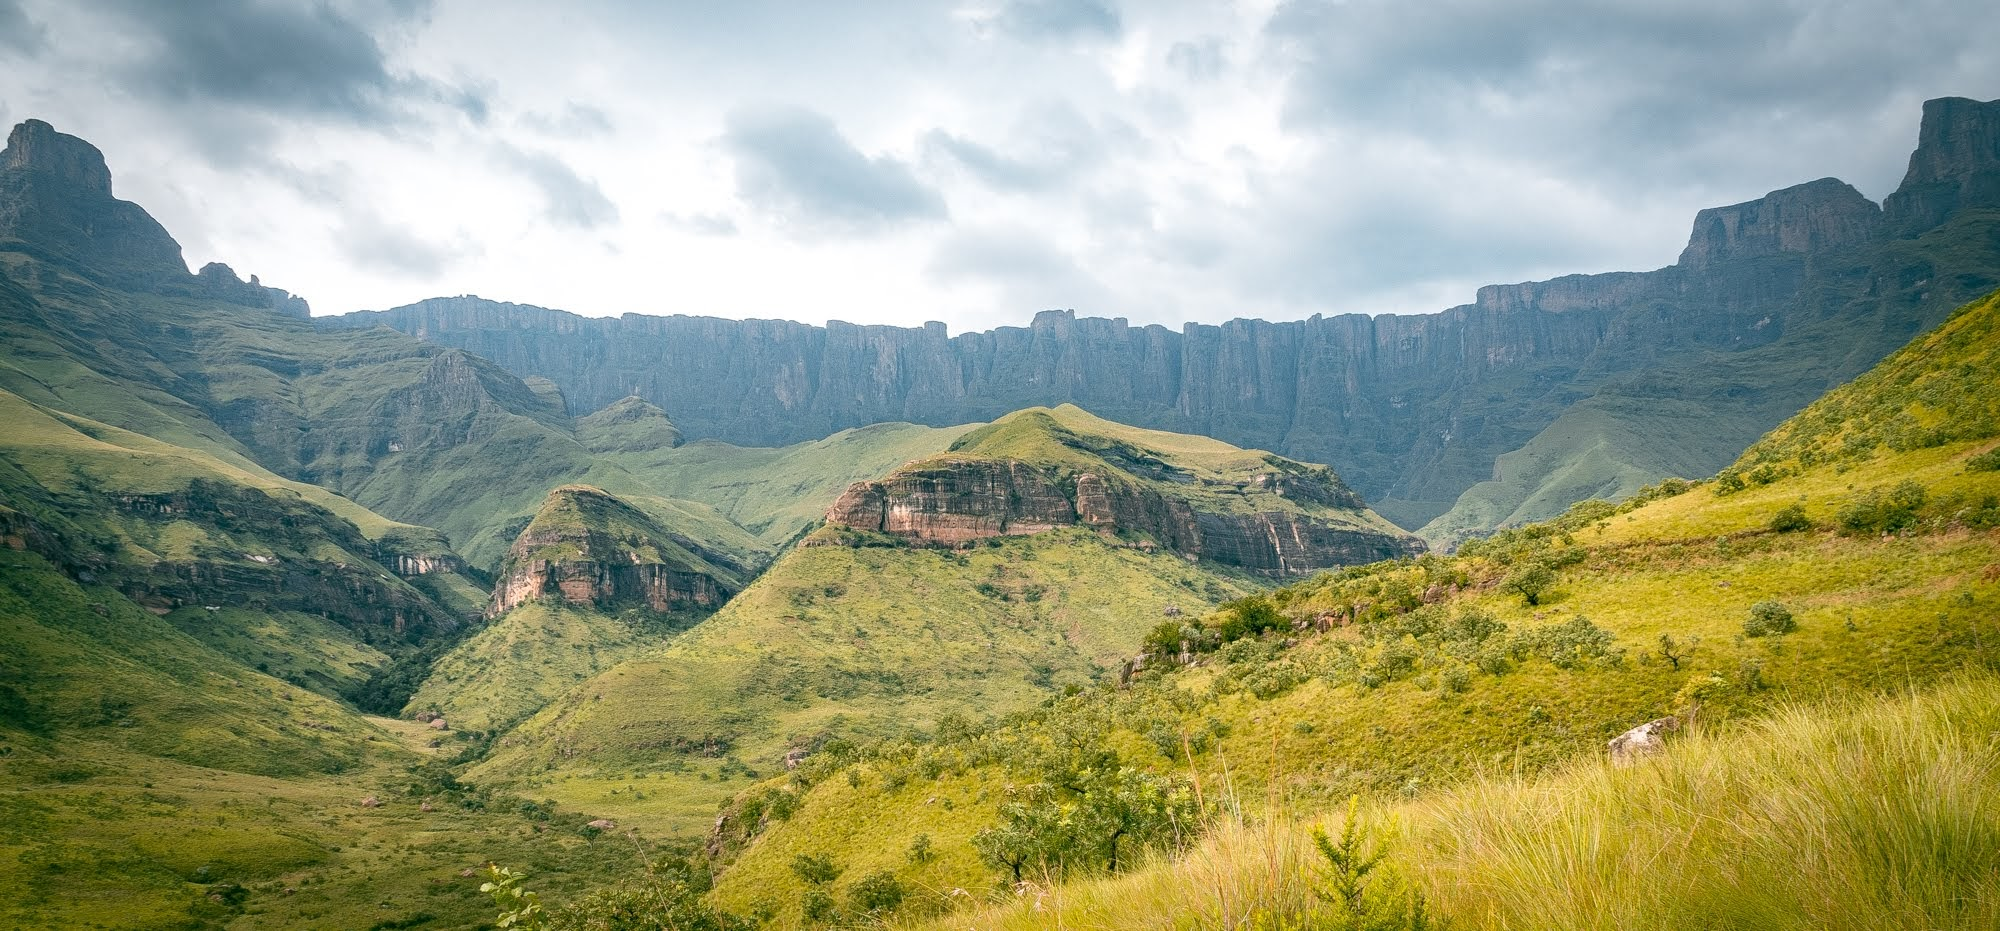 The Amphitheatre formation in Drakensberg, South Africa